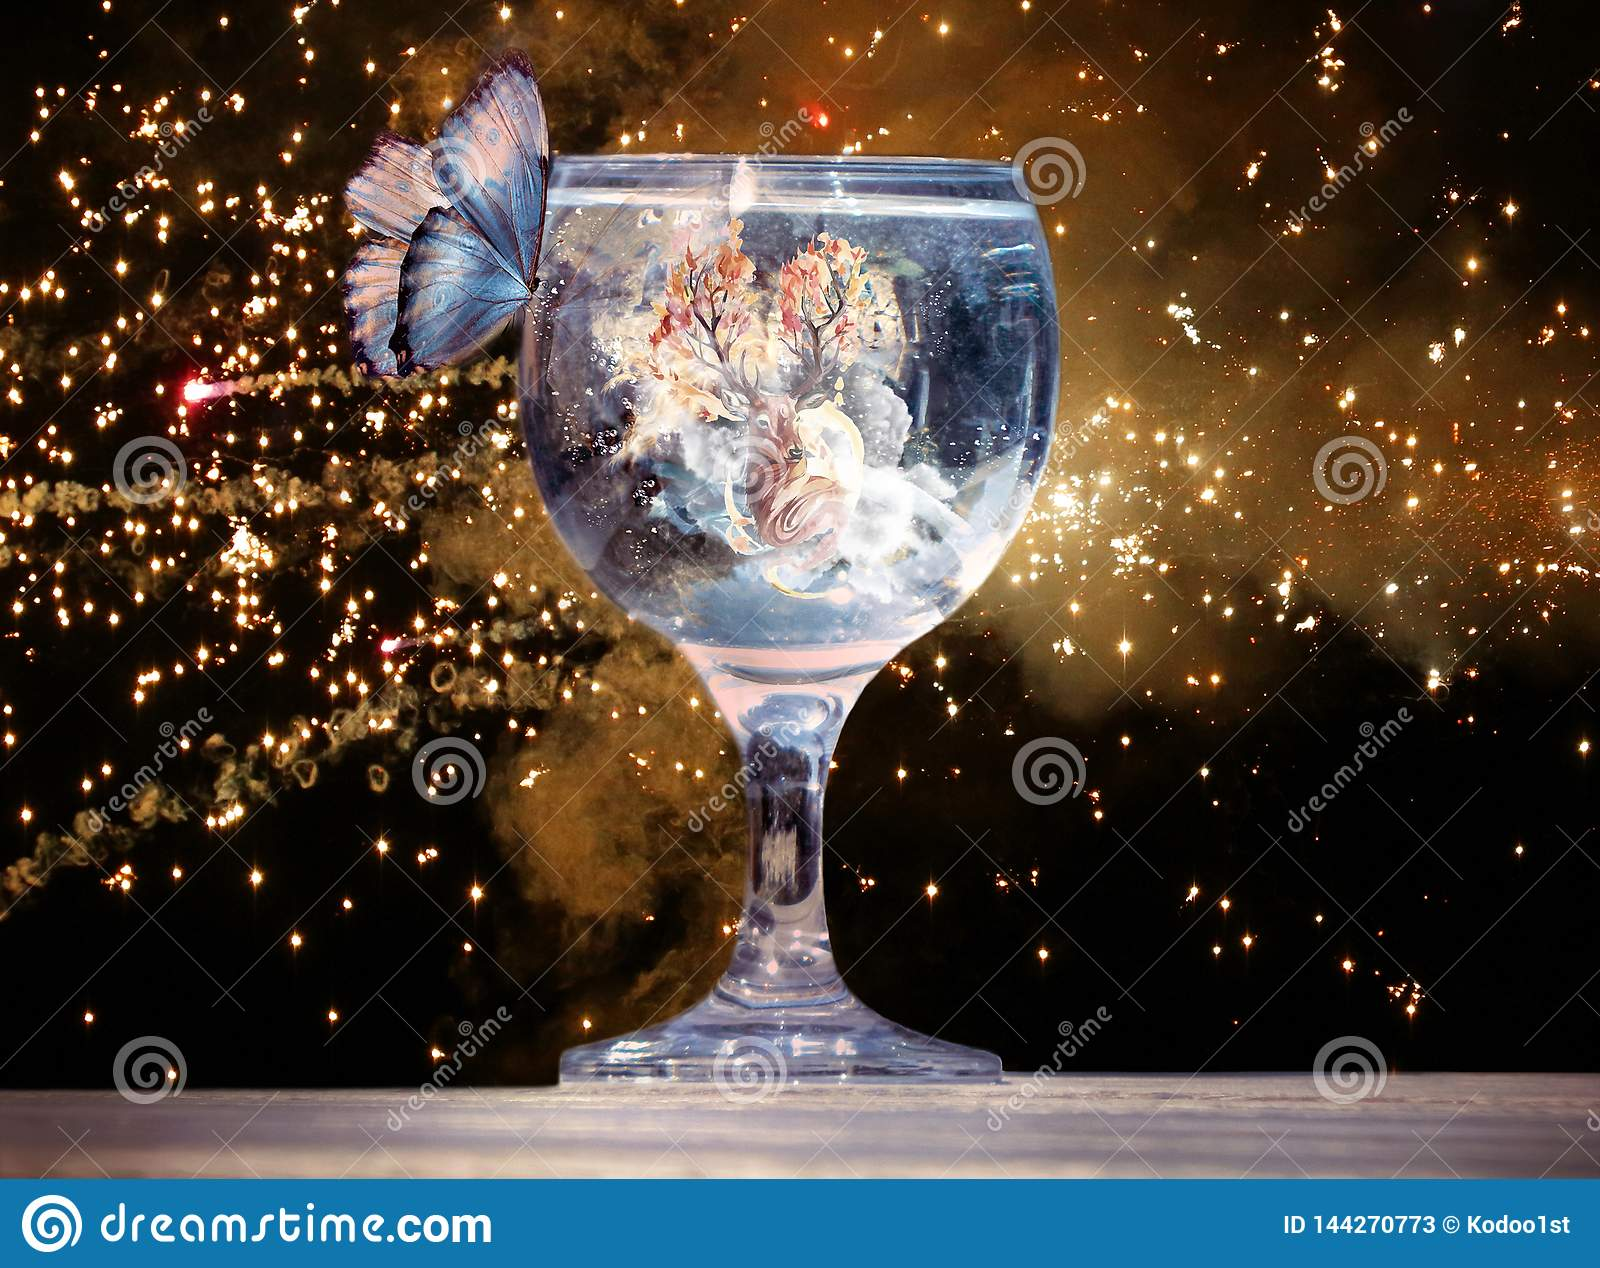 Artistic 3d rendering illustration of a butterfly on a cup of water in a unique artwork